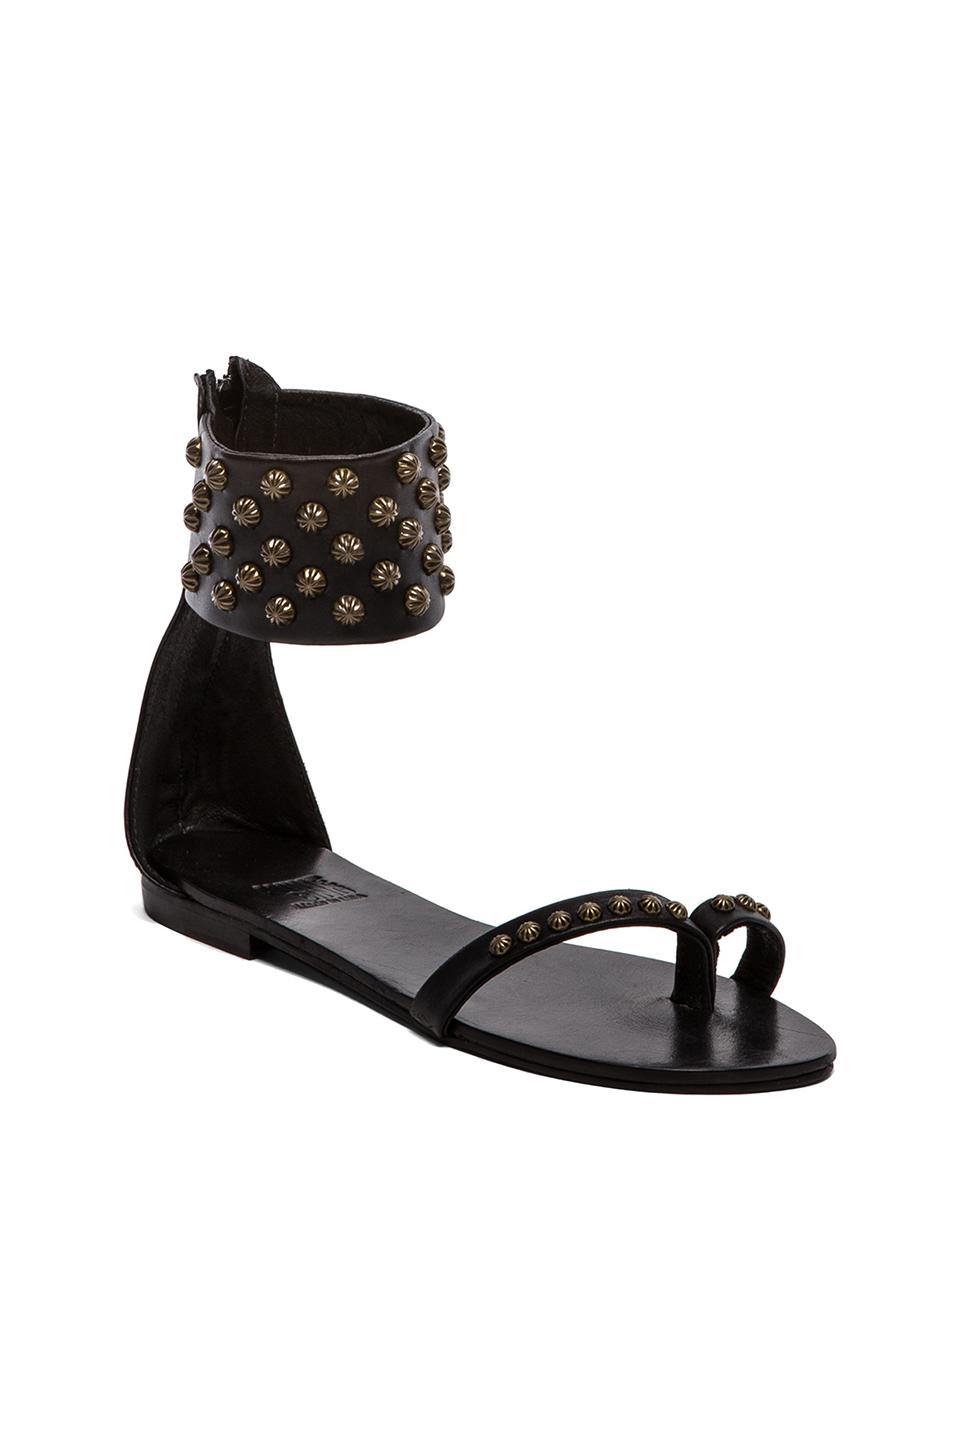 ANINE BING Ankle Cuff Sandals in Black from REVOLVEclothing.com